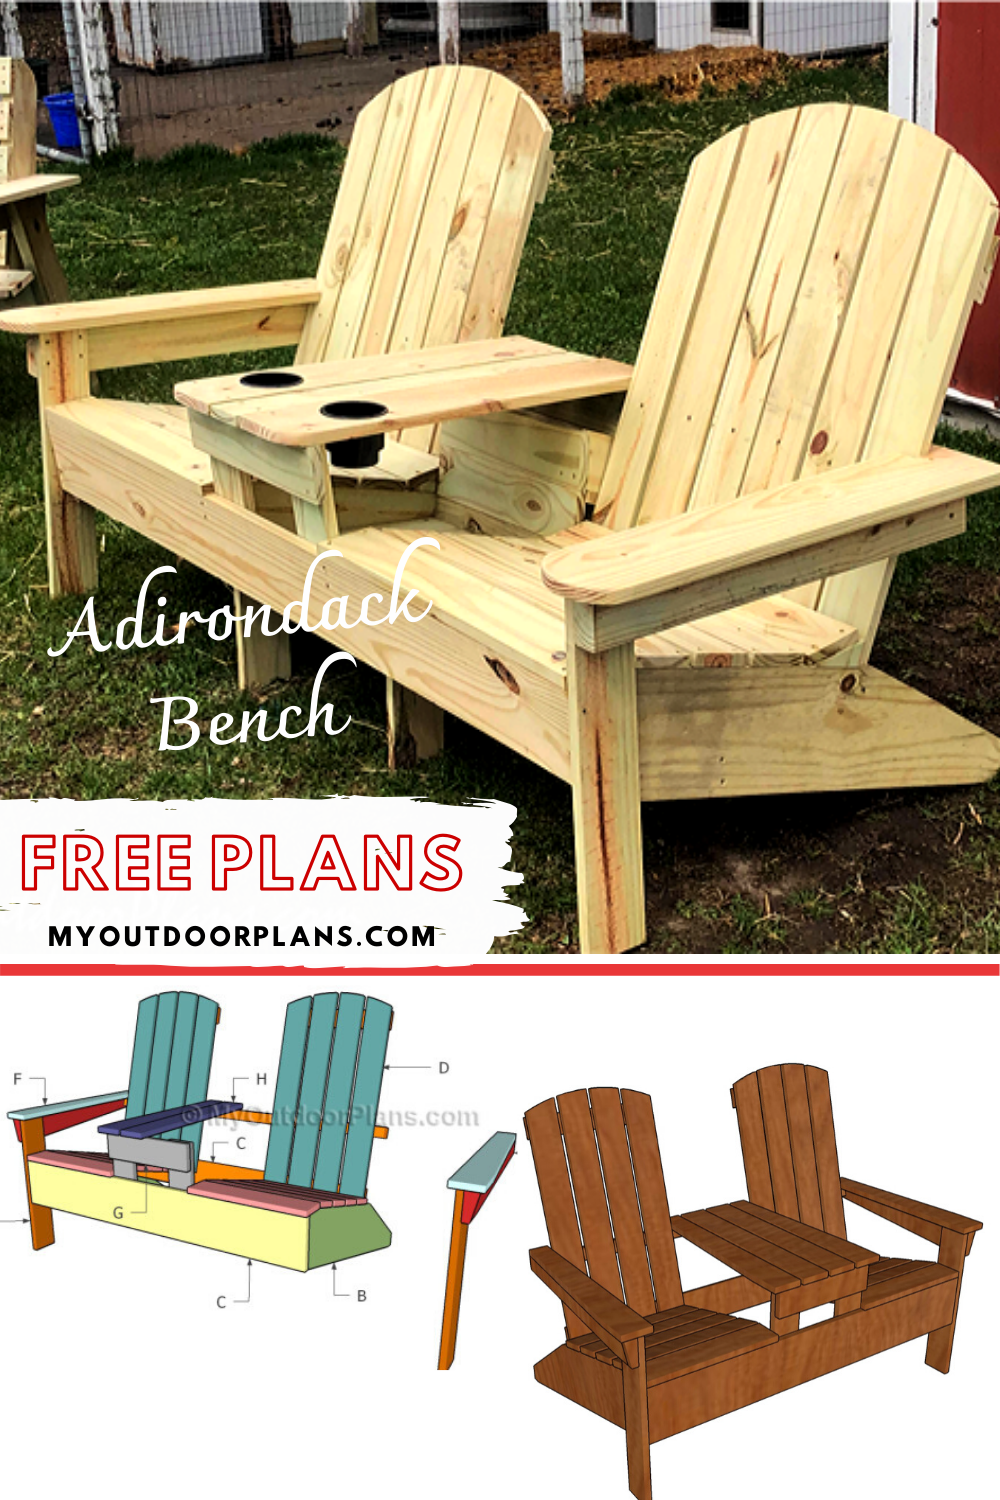 How To Build And Adirondack Bench In 2020 Outdoor Woodworking Plans Outdoor Furniture Plans Woodworking Furniture Plans